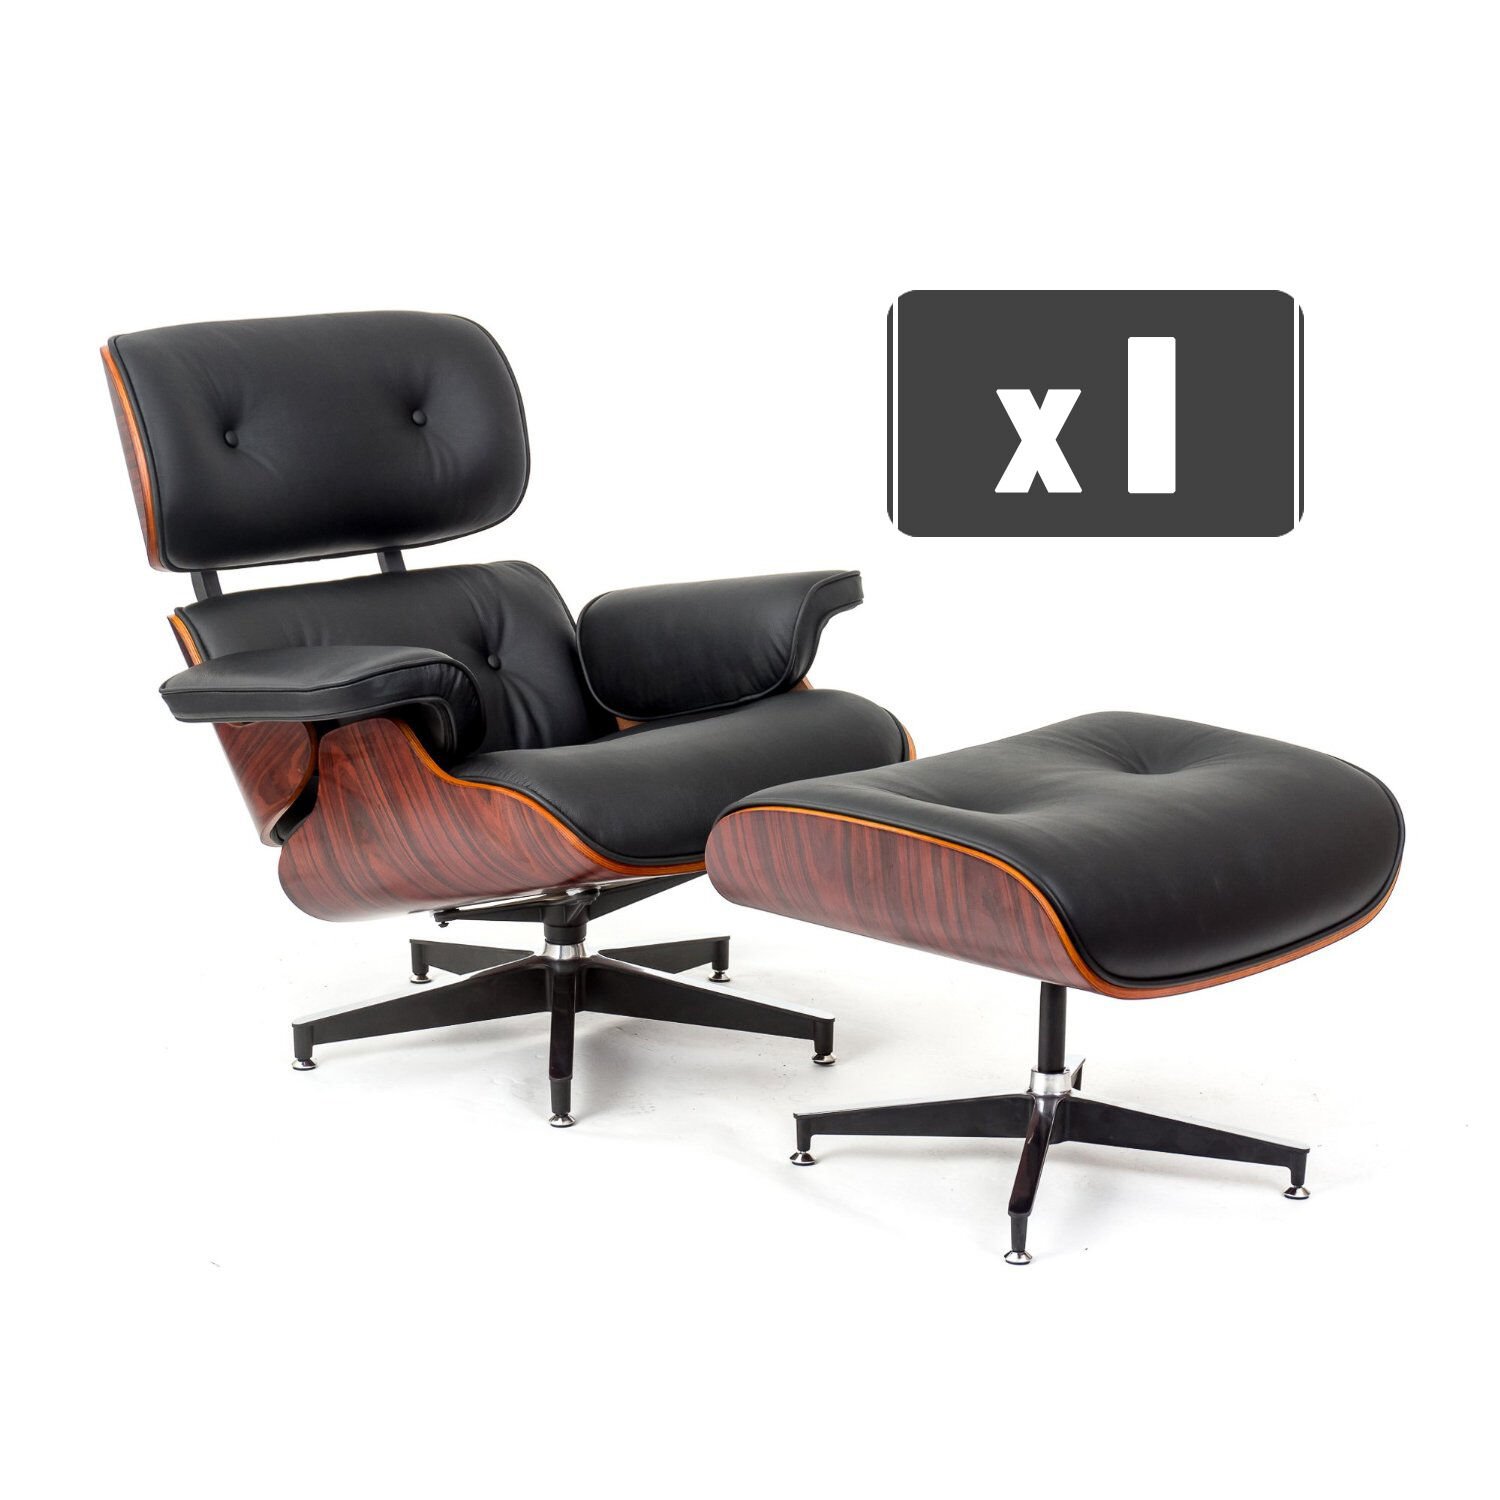 Charles Eames Lounge Chair Replica Charles Eames Lounge Chair And Ottoman In Black